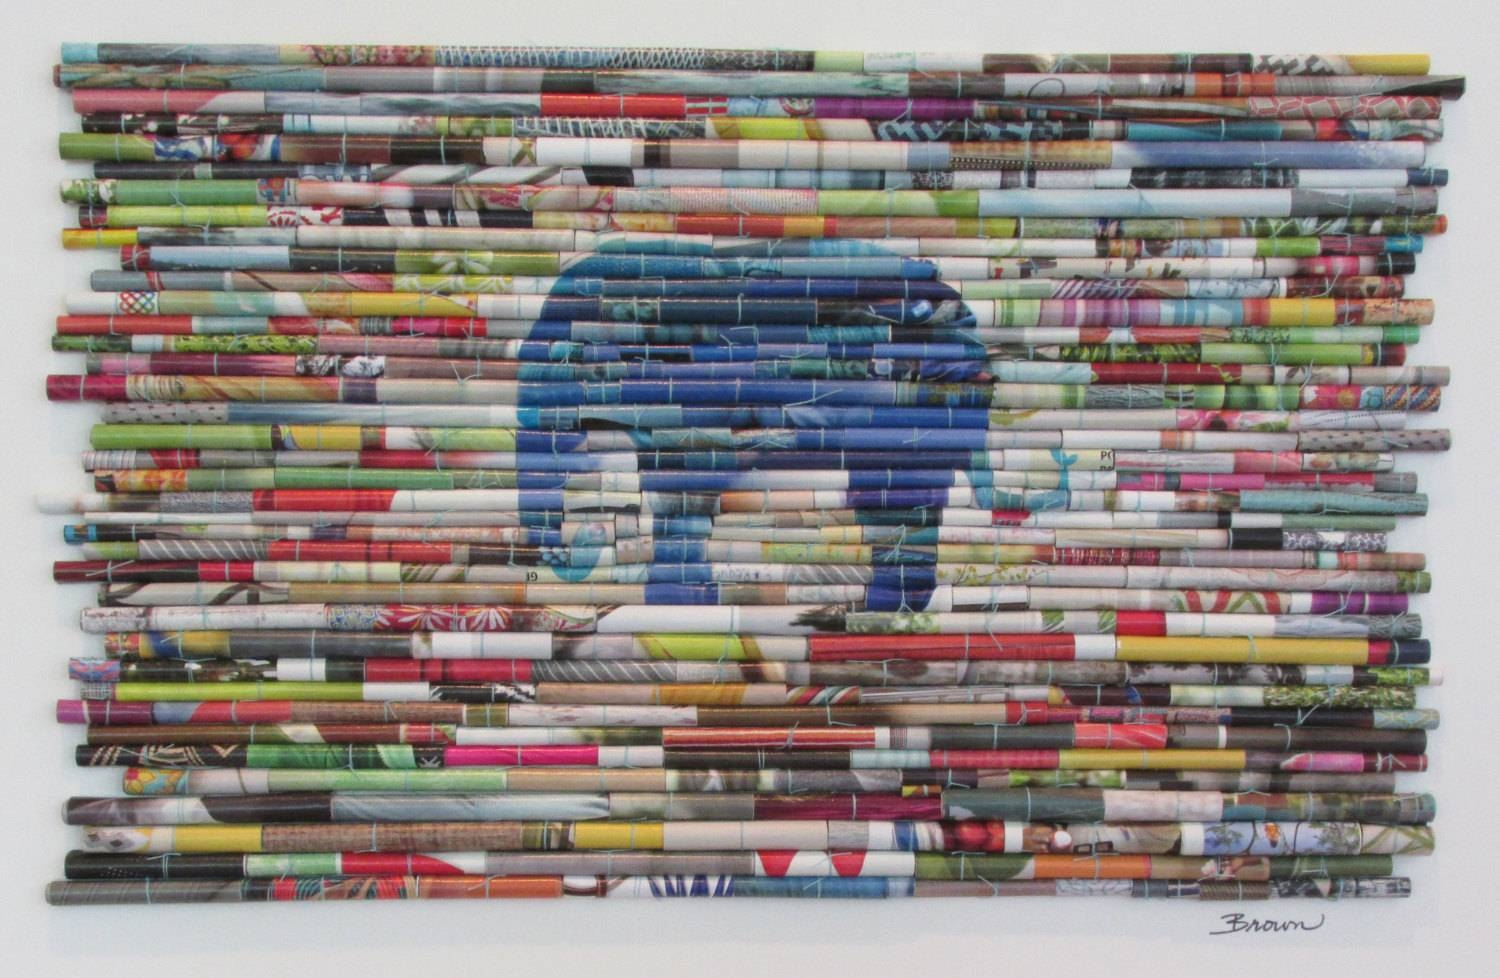 How To Recycle: Recycled Wall Art Designs Intended For Most Current Recycled Wall Art (Gallery 2 of 30)